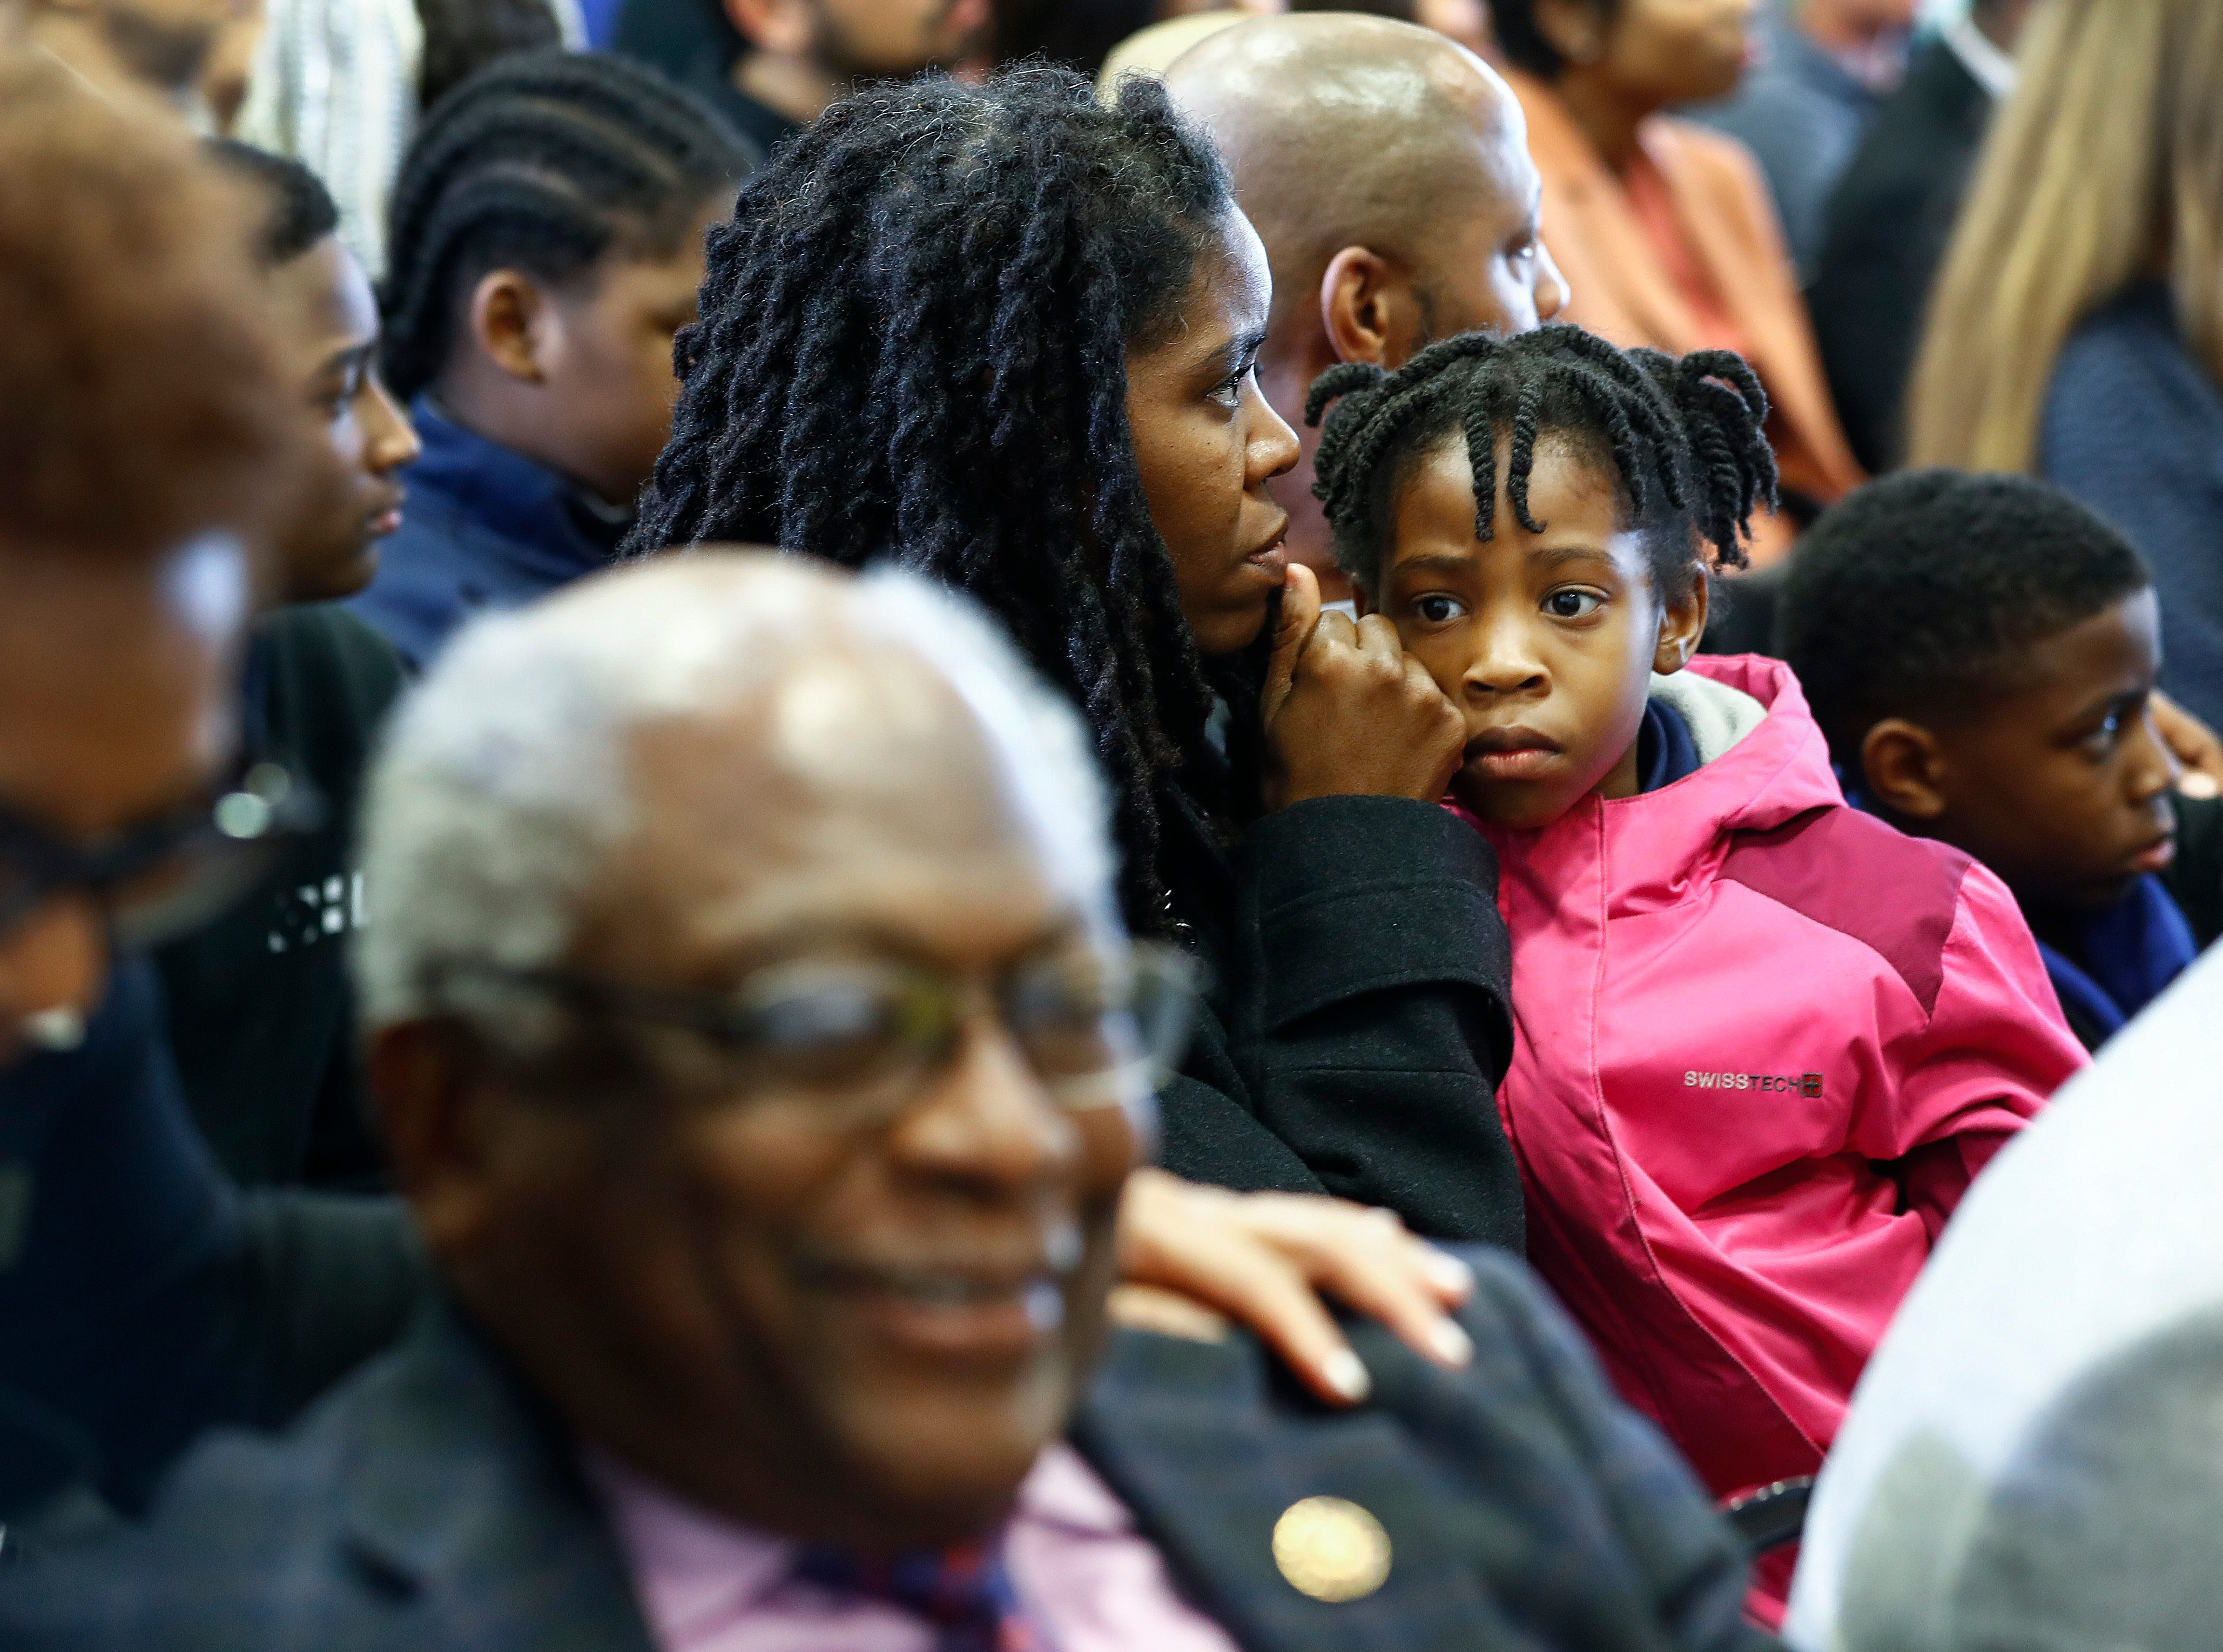 People reflect during a commemoration ceremony at the National Civil Rights Museum on April 4, 2019, on the 51st anniversary of Dr. Martin Luther King, Jr.'s assassination.